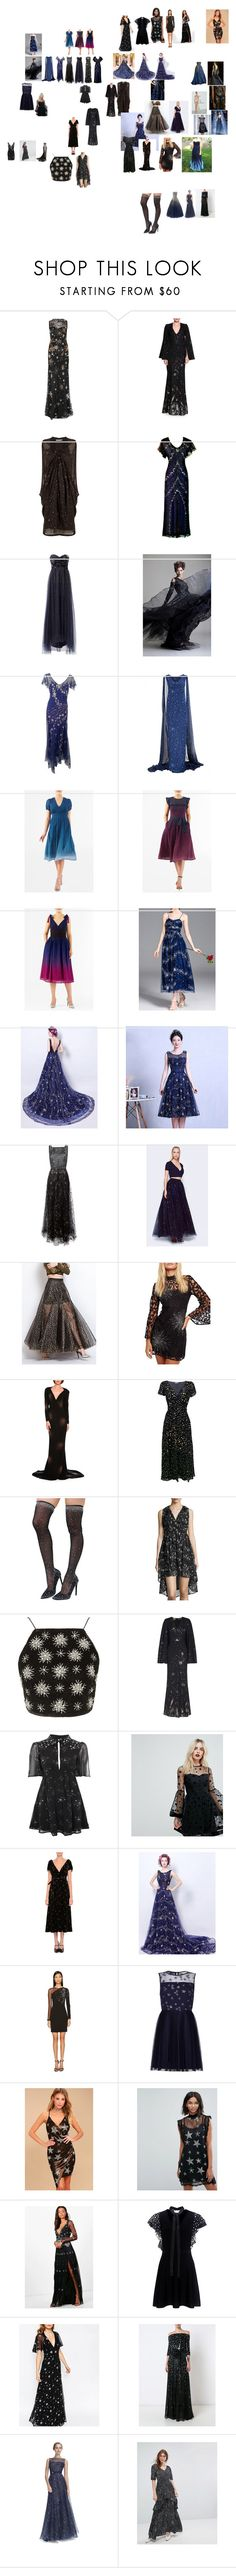 """""""About to make into a collection"""" by wastedstalker ❤ liked on Polyvore featuring Jenny Packham, Alexander McQueen, Notte by Marchesa, WithChic, Valentino, Fame & Partners, YiGelila, Free People, STELLA McCARTNEY and RED Valentino"""